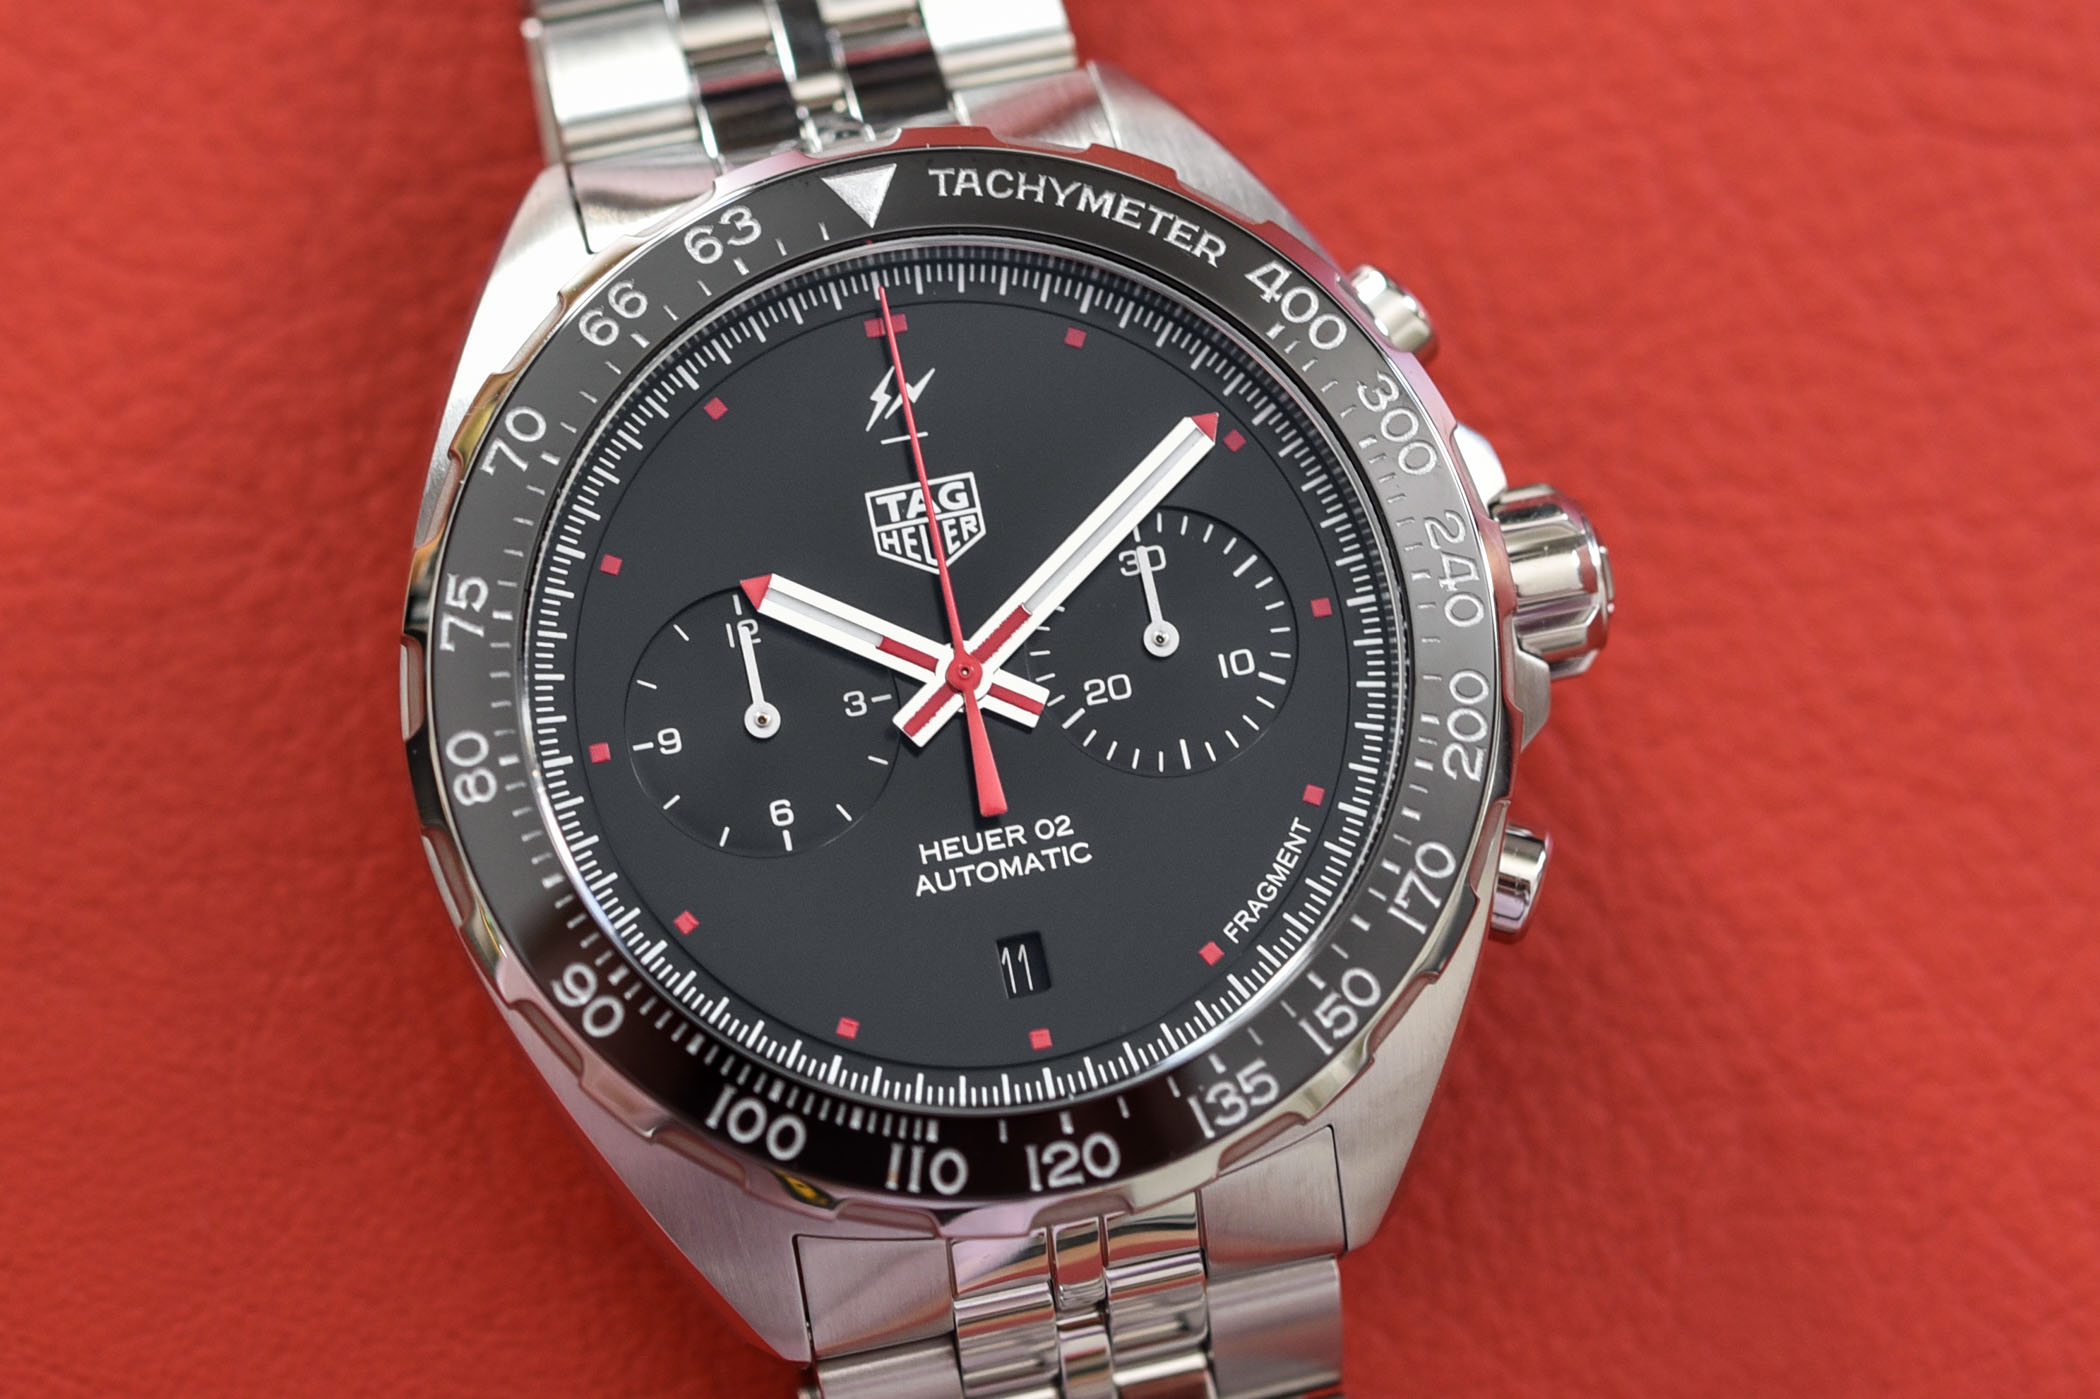 TAG Heuer x Fragment Design Calibre Heuer 02 Automatic Chronograph - Review - 1